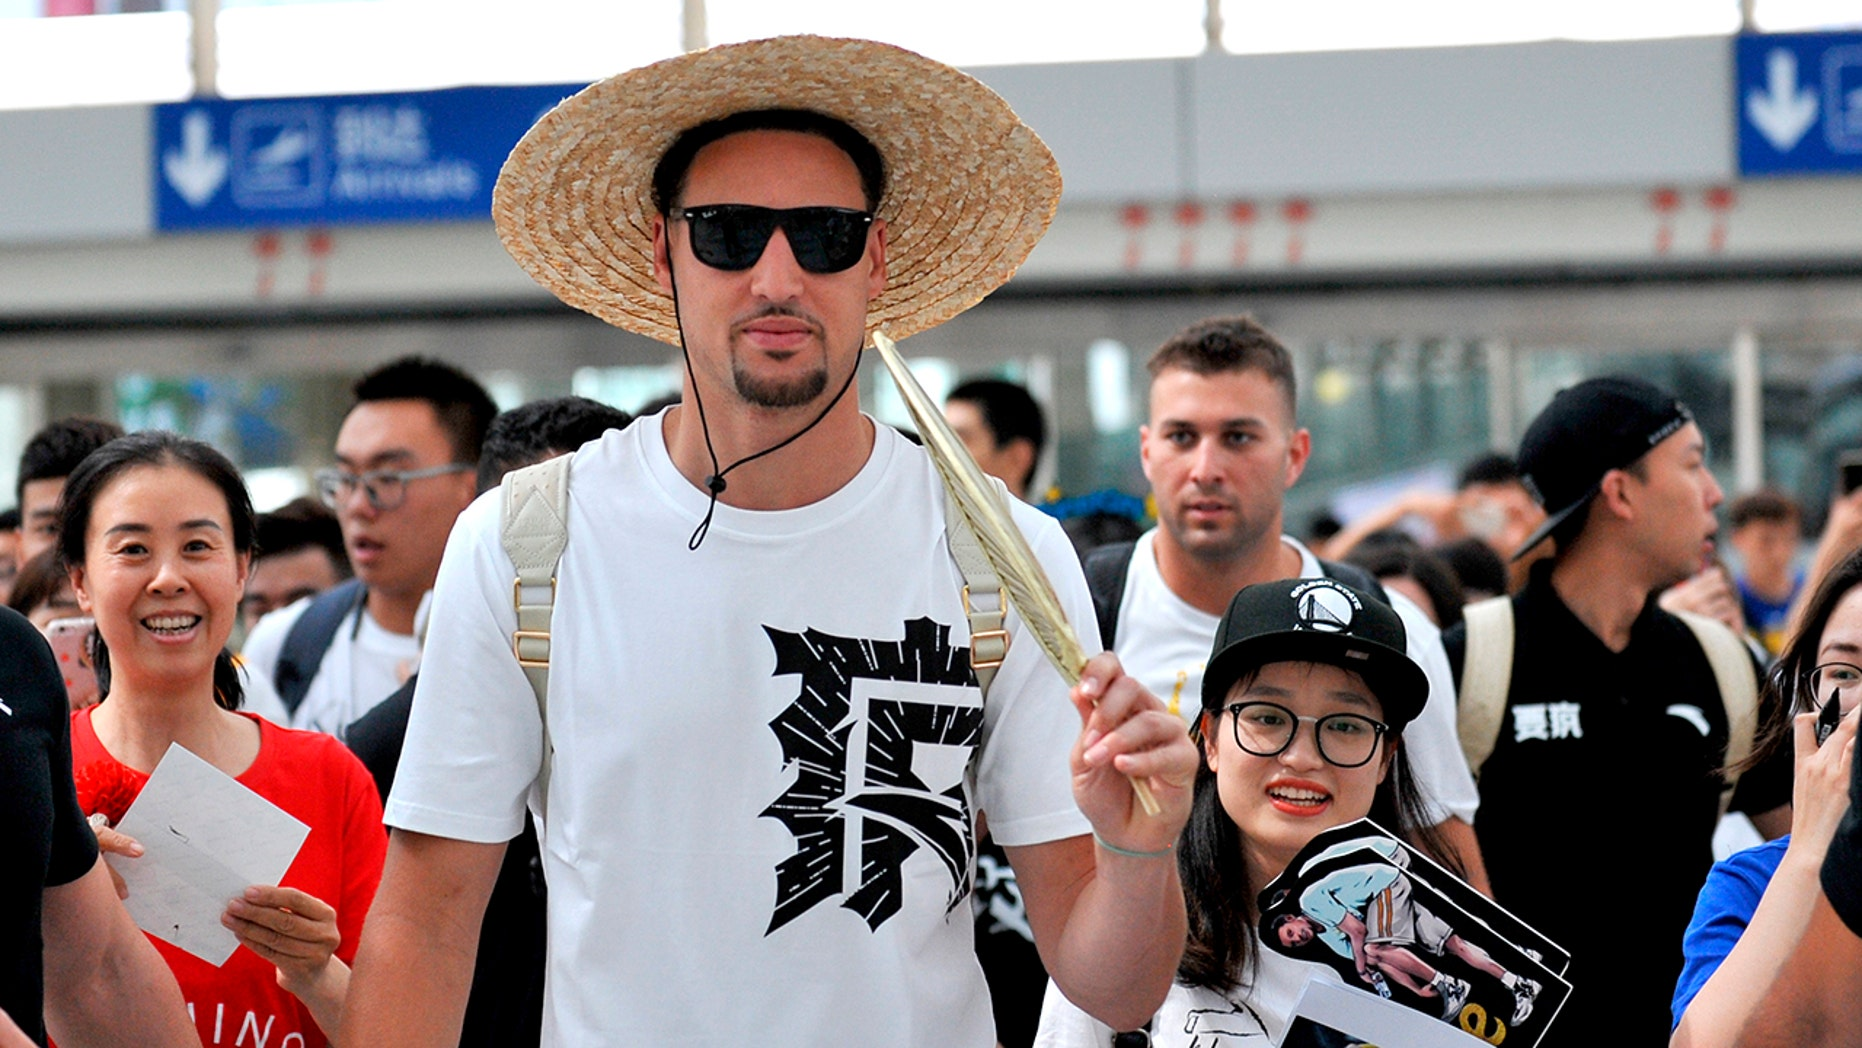 Klay Thompson, with a straw hat on the head, incites a palm-leaf fan as he arrives at the Beijing Capital International Airport in Beijing.